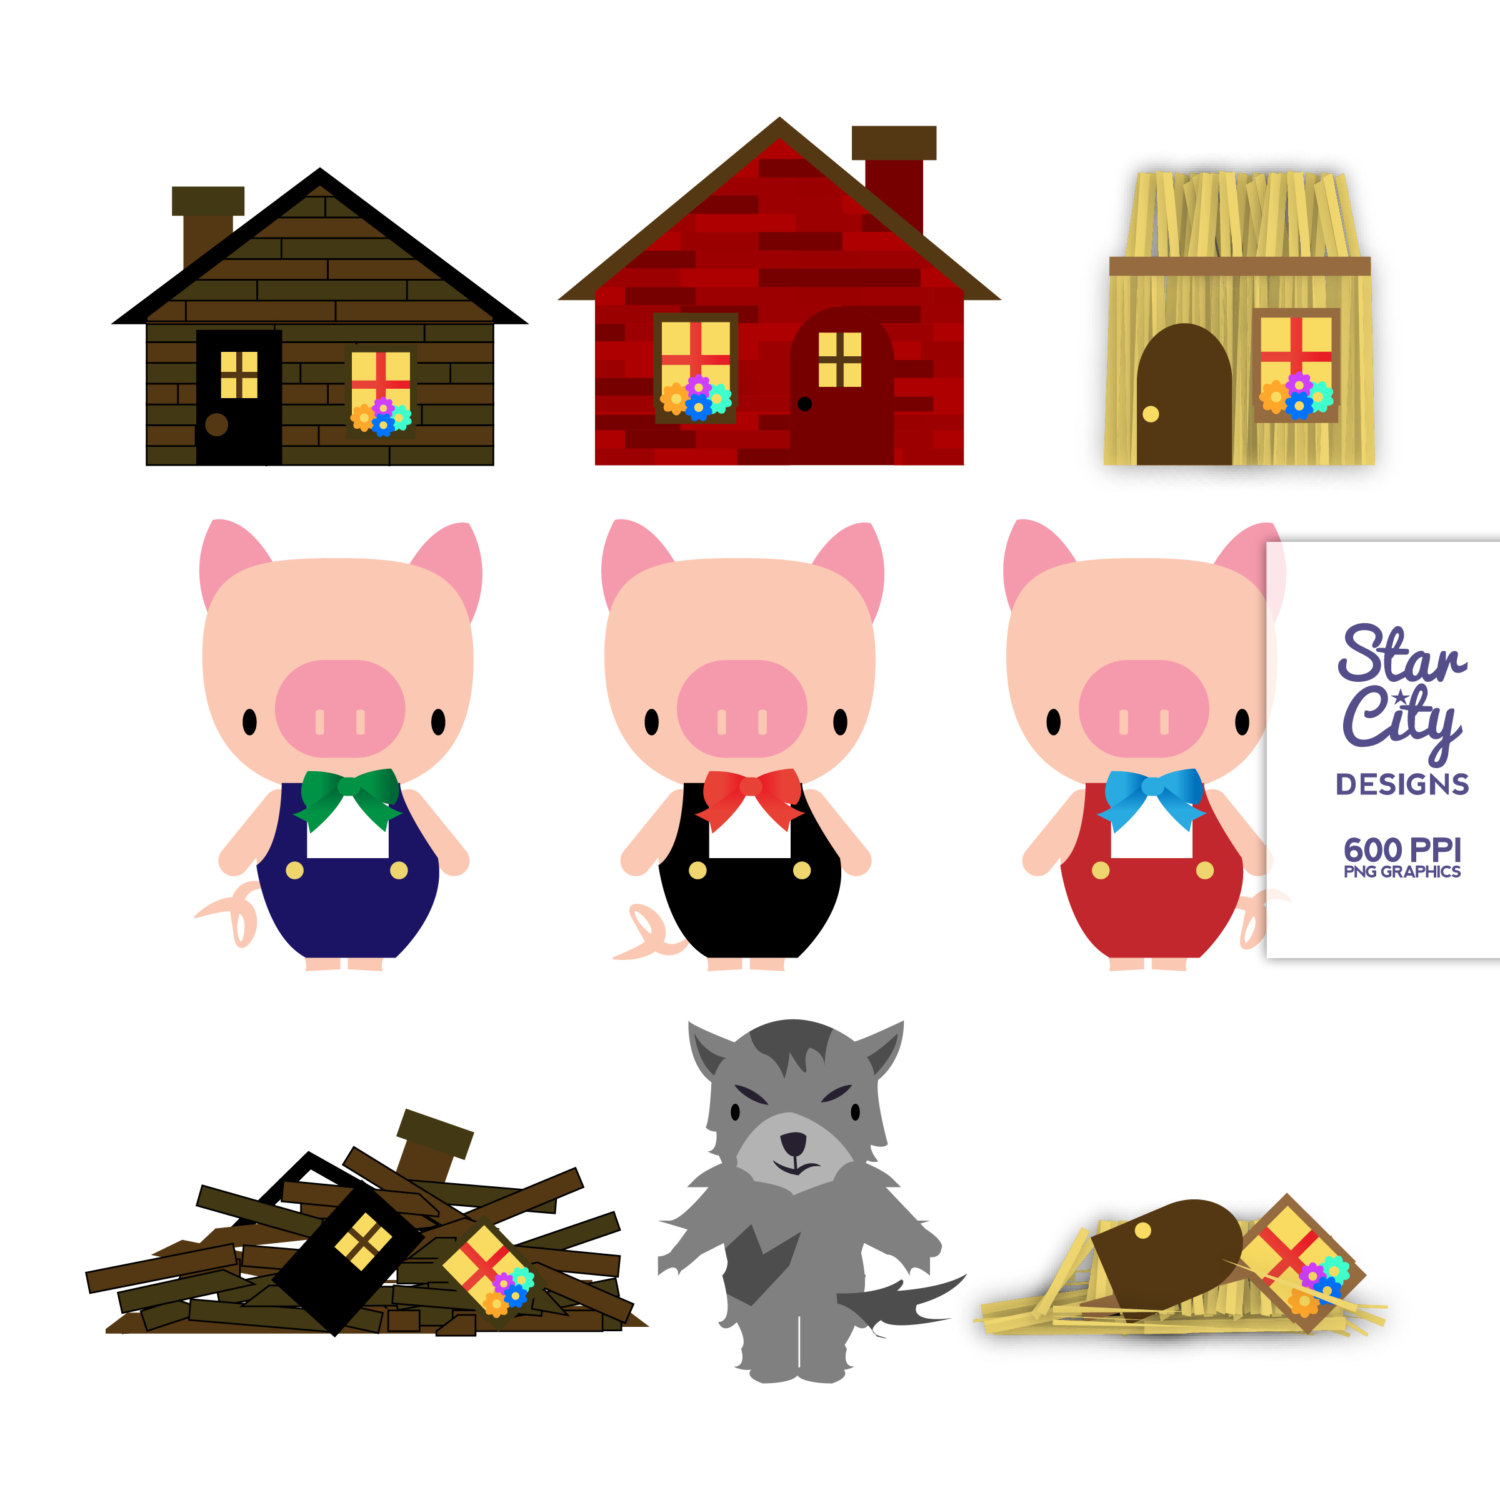 Google Clip Three Little Pigs Pictures to Pin on Pinterest - PinsDaddy